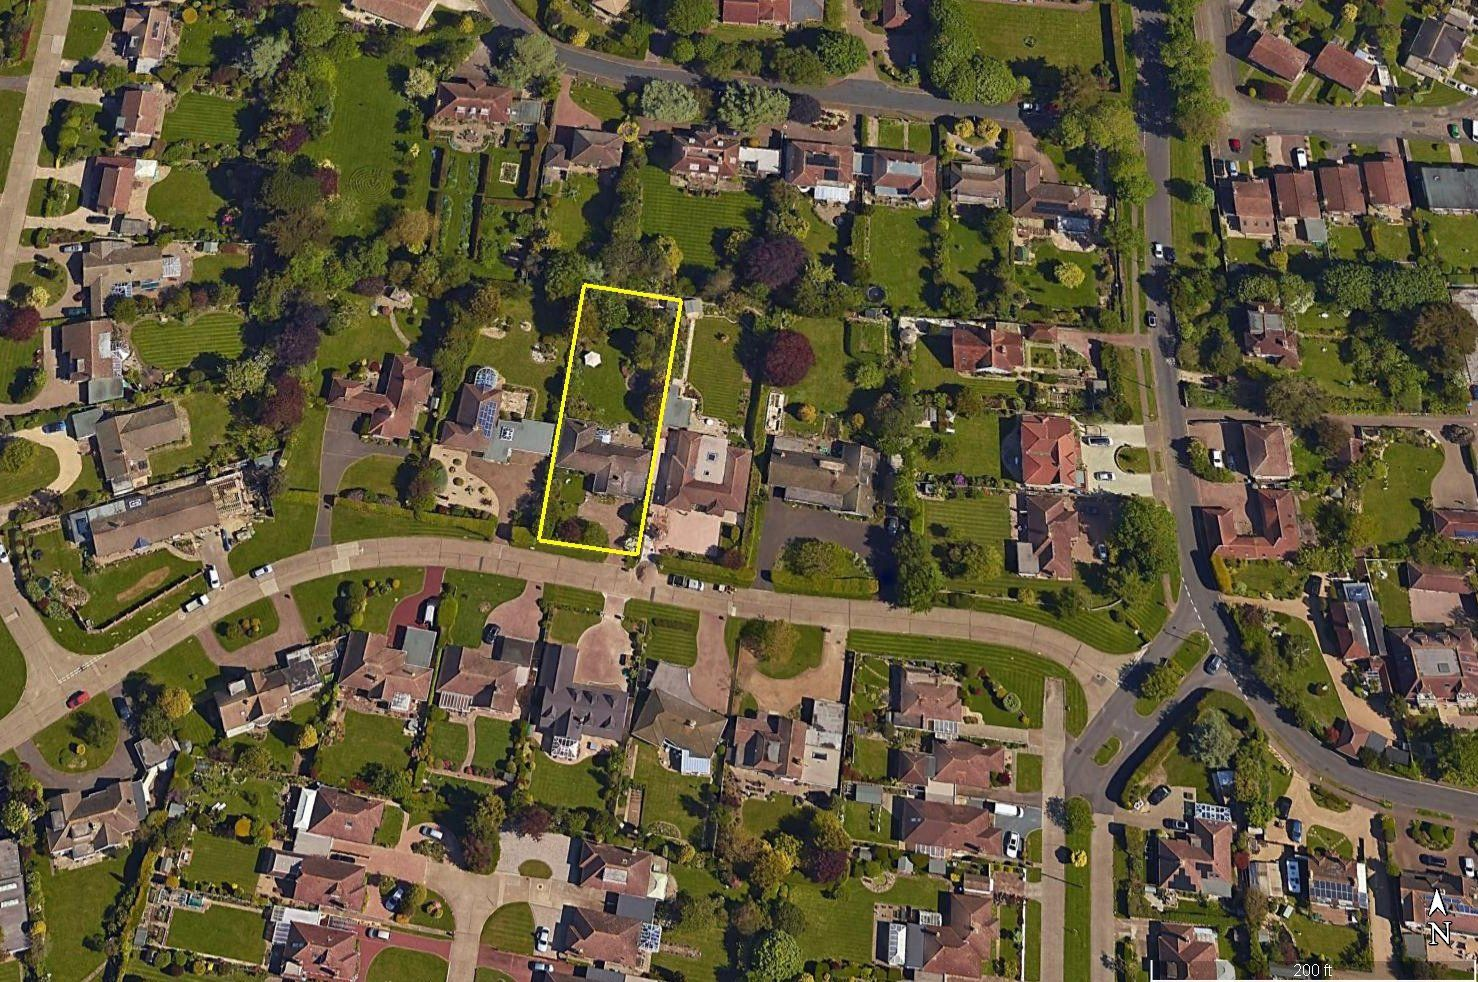 3 bed Bungalow for sale in East Preston - Aerial view (Property Image 17)